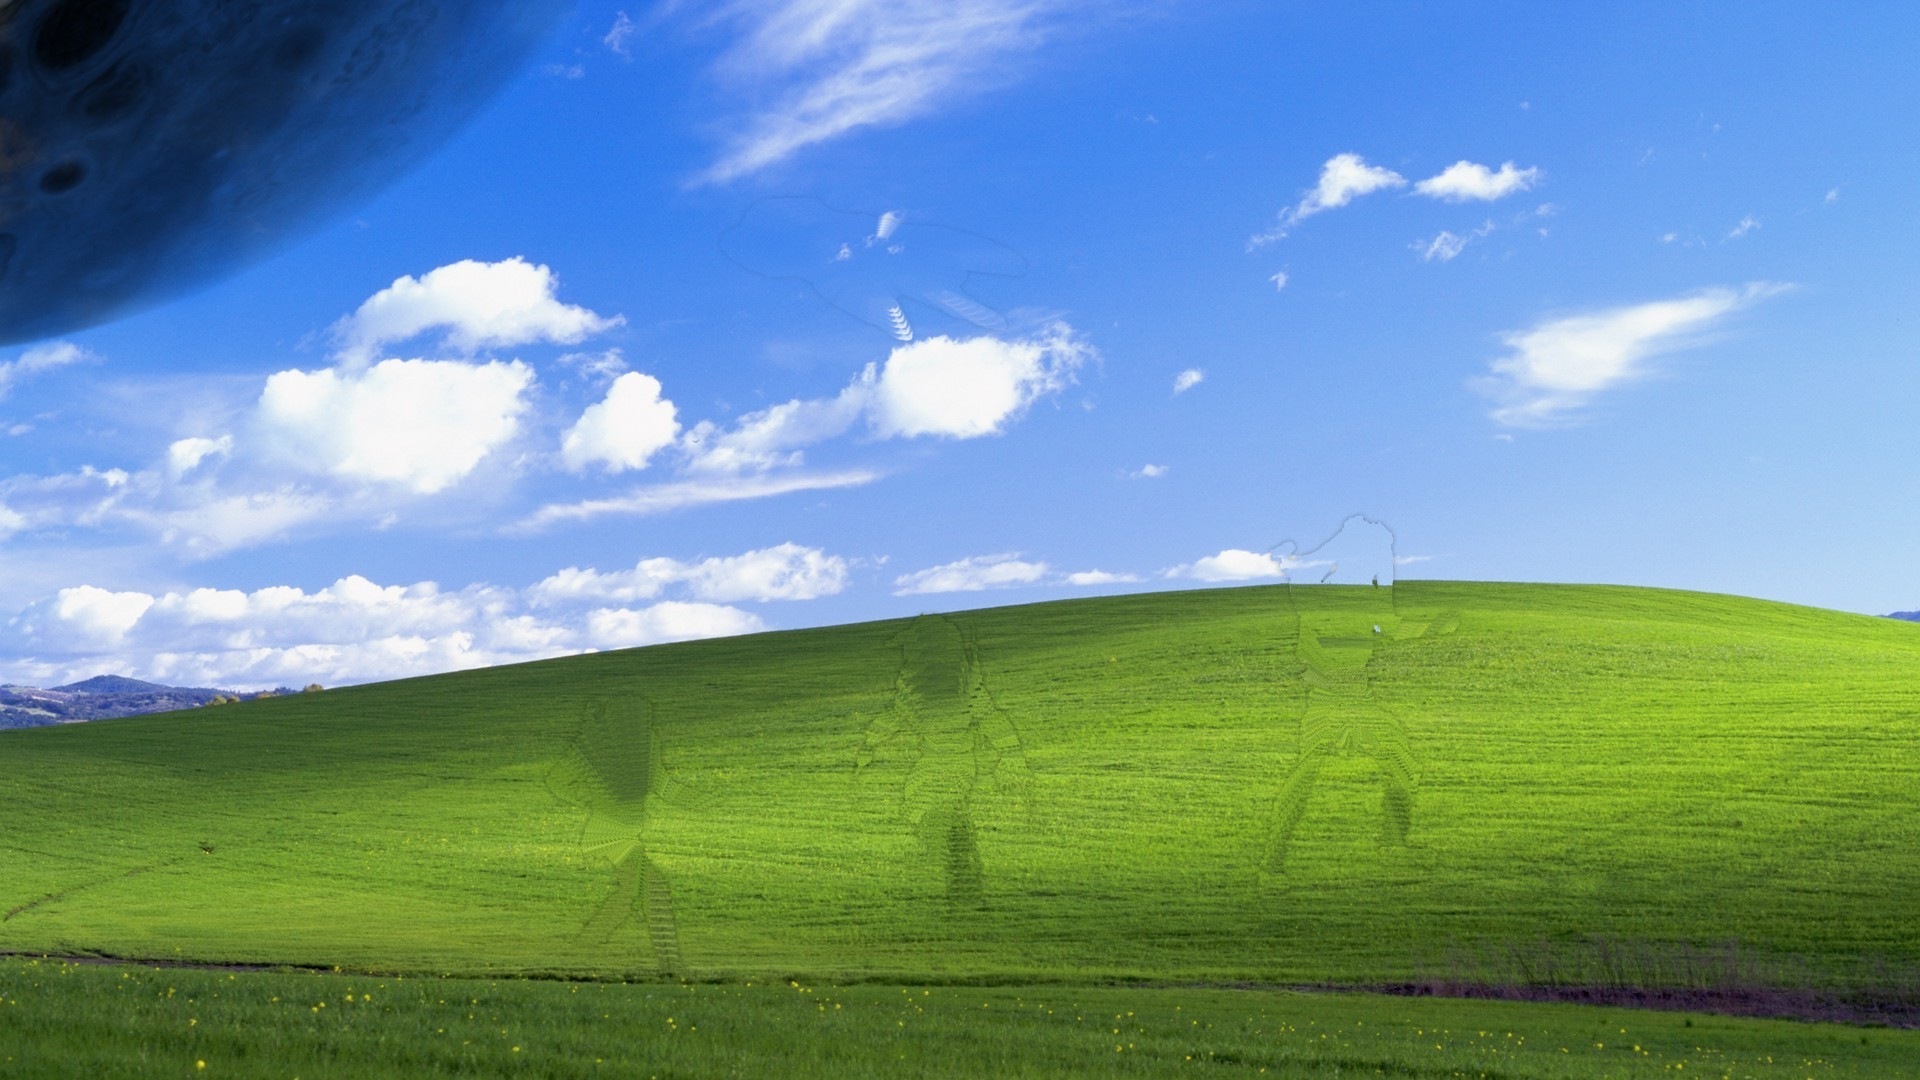 Windows Xp Hd Wallpaper Wallpapertag